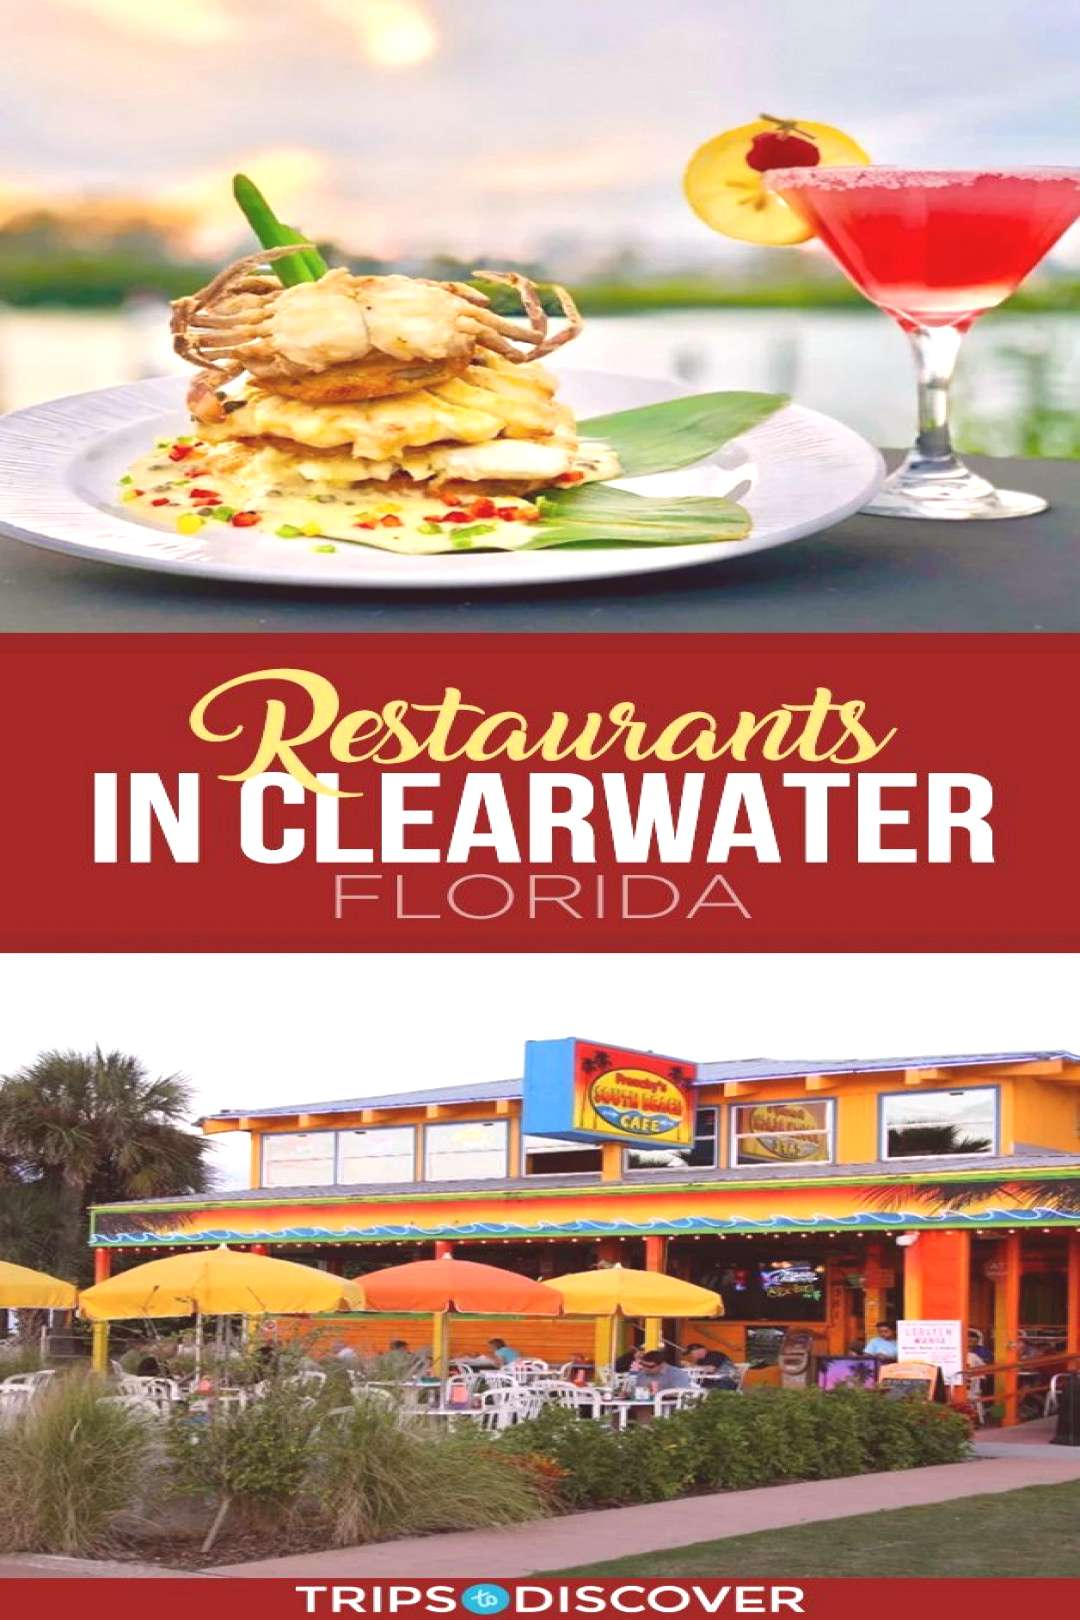 10 Best Restaurants in Clearwater, Florida 10 Best Restaurants in Clearwater, Florida -